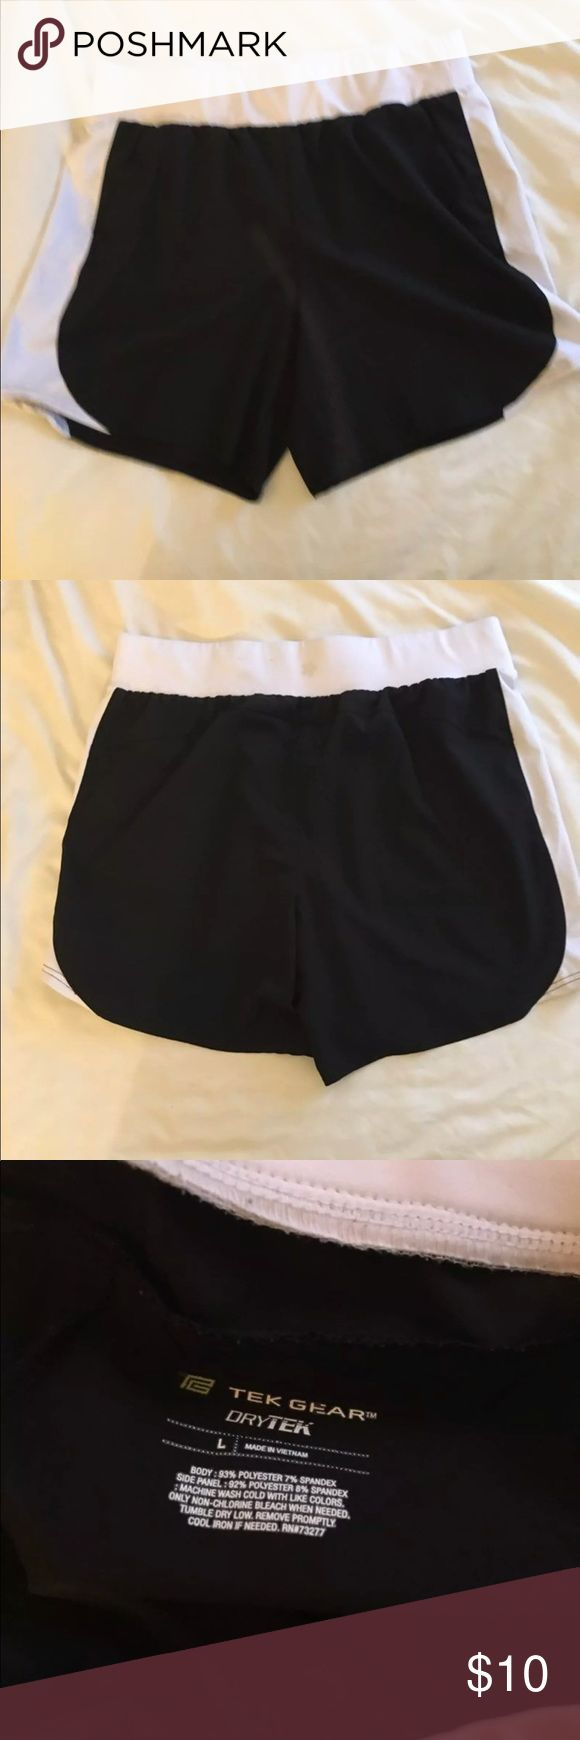 Women's Workout Shorts Large Black and white Tek Gear Women's shorts. Only worn a handful of times, in like new condition! Check out the other shorts I have listed, I do bundle deals! tek gear Shorts